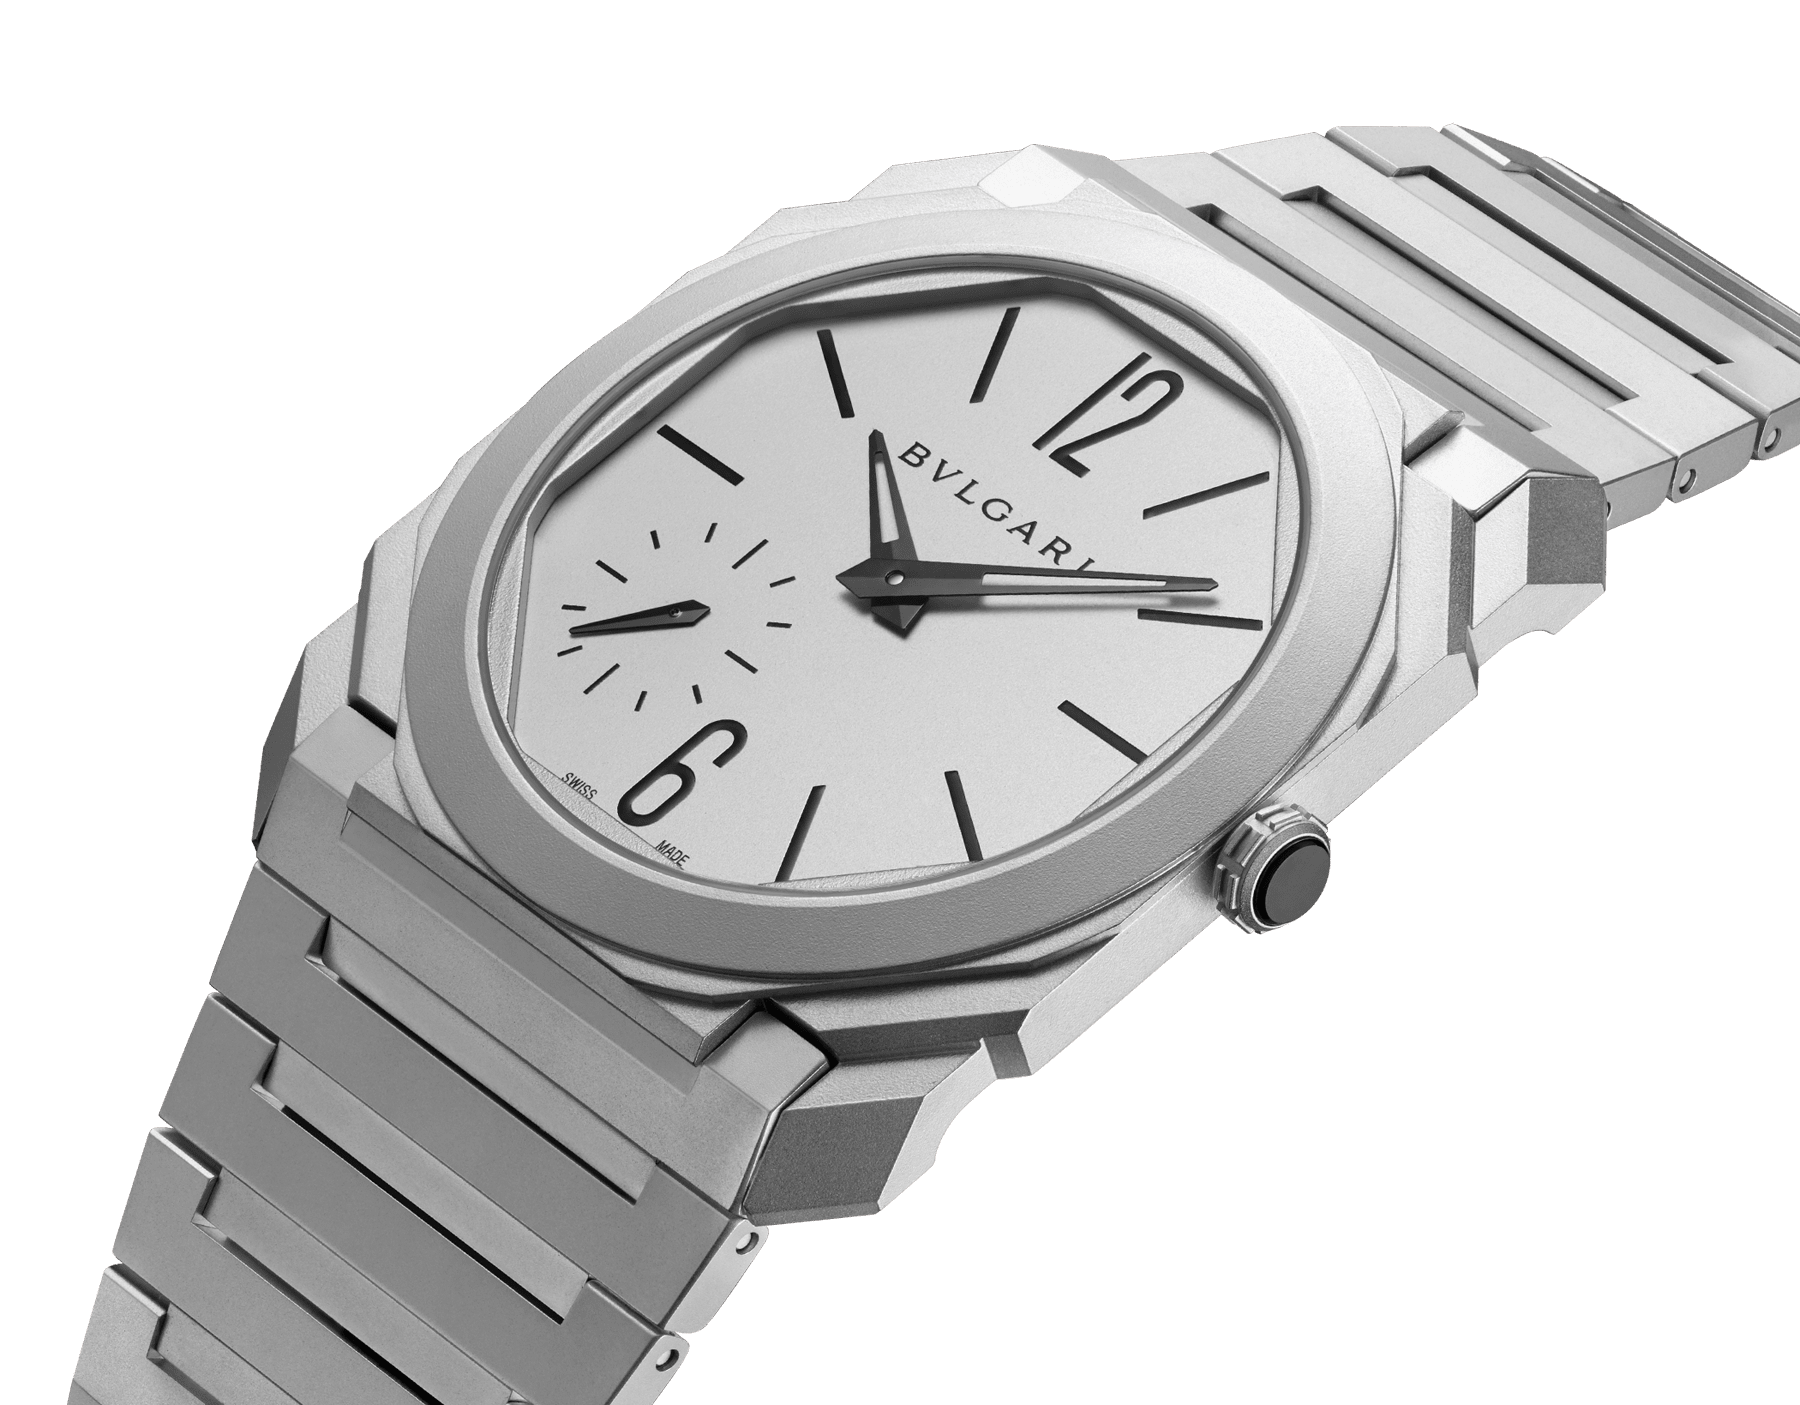 Octo Finissimo Automatic watch with mechanical manufacture movement, automatic winding, platinum microrotor, small seconds, extra-thin stainless steel case, dial and bracelet 103011 image 2